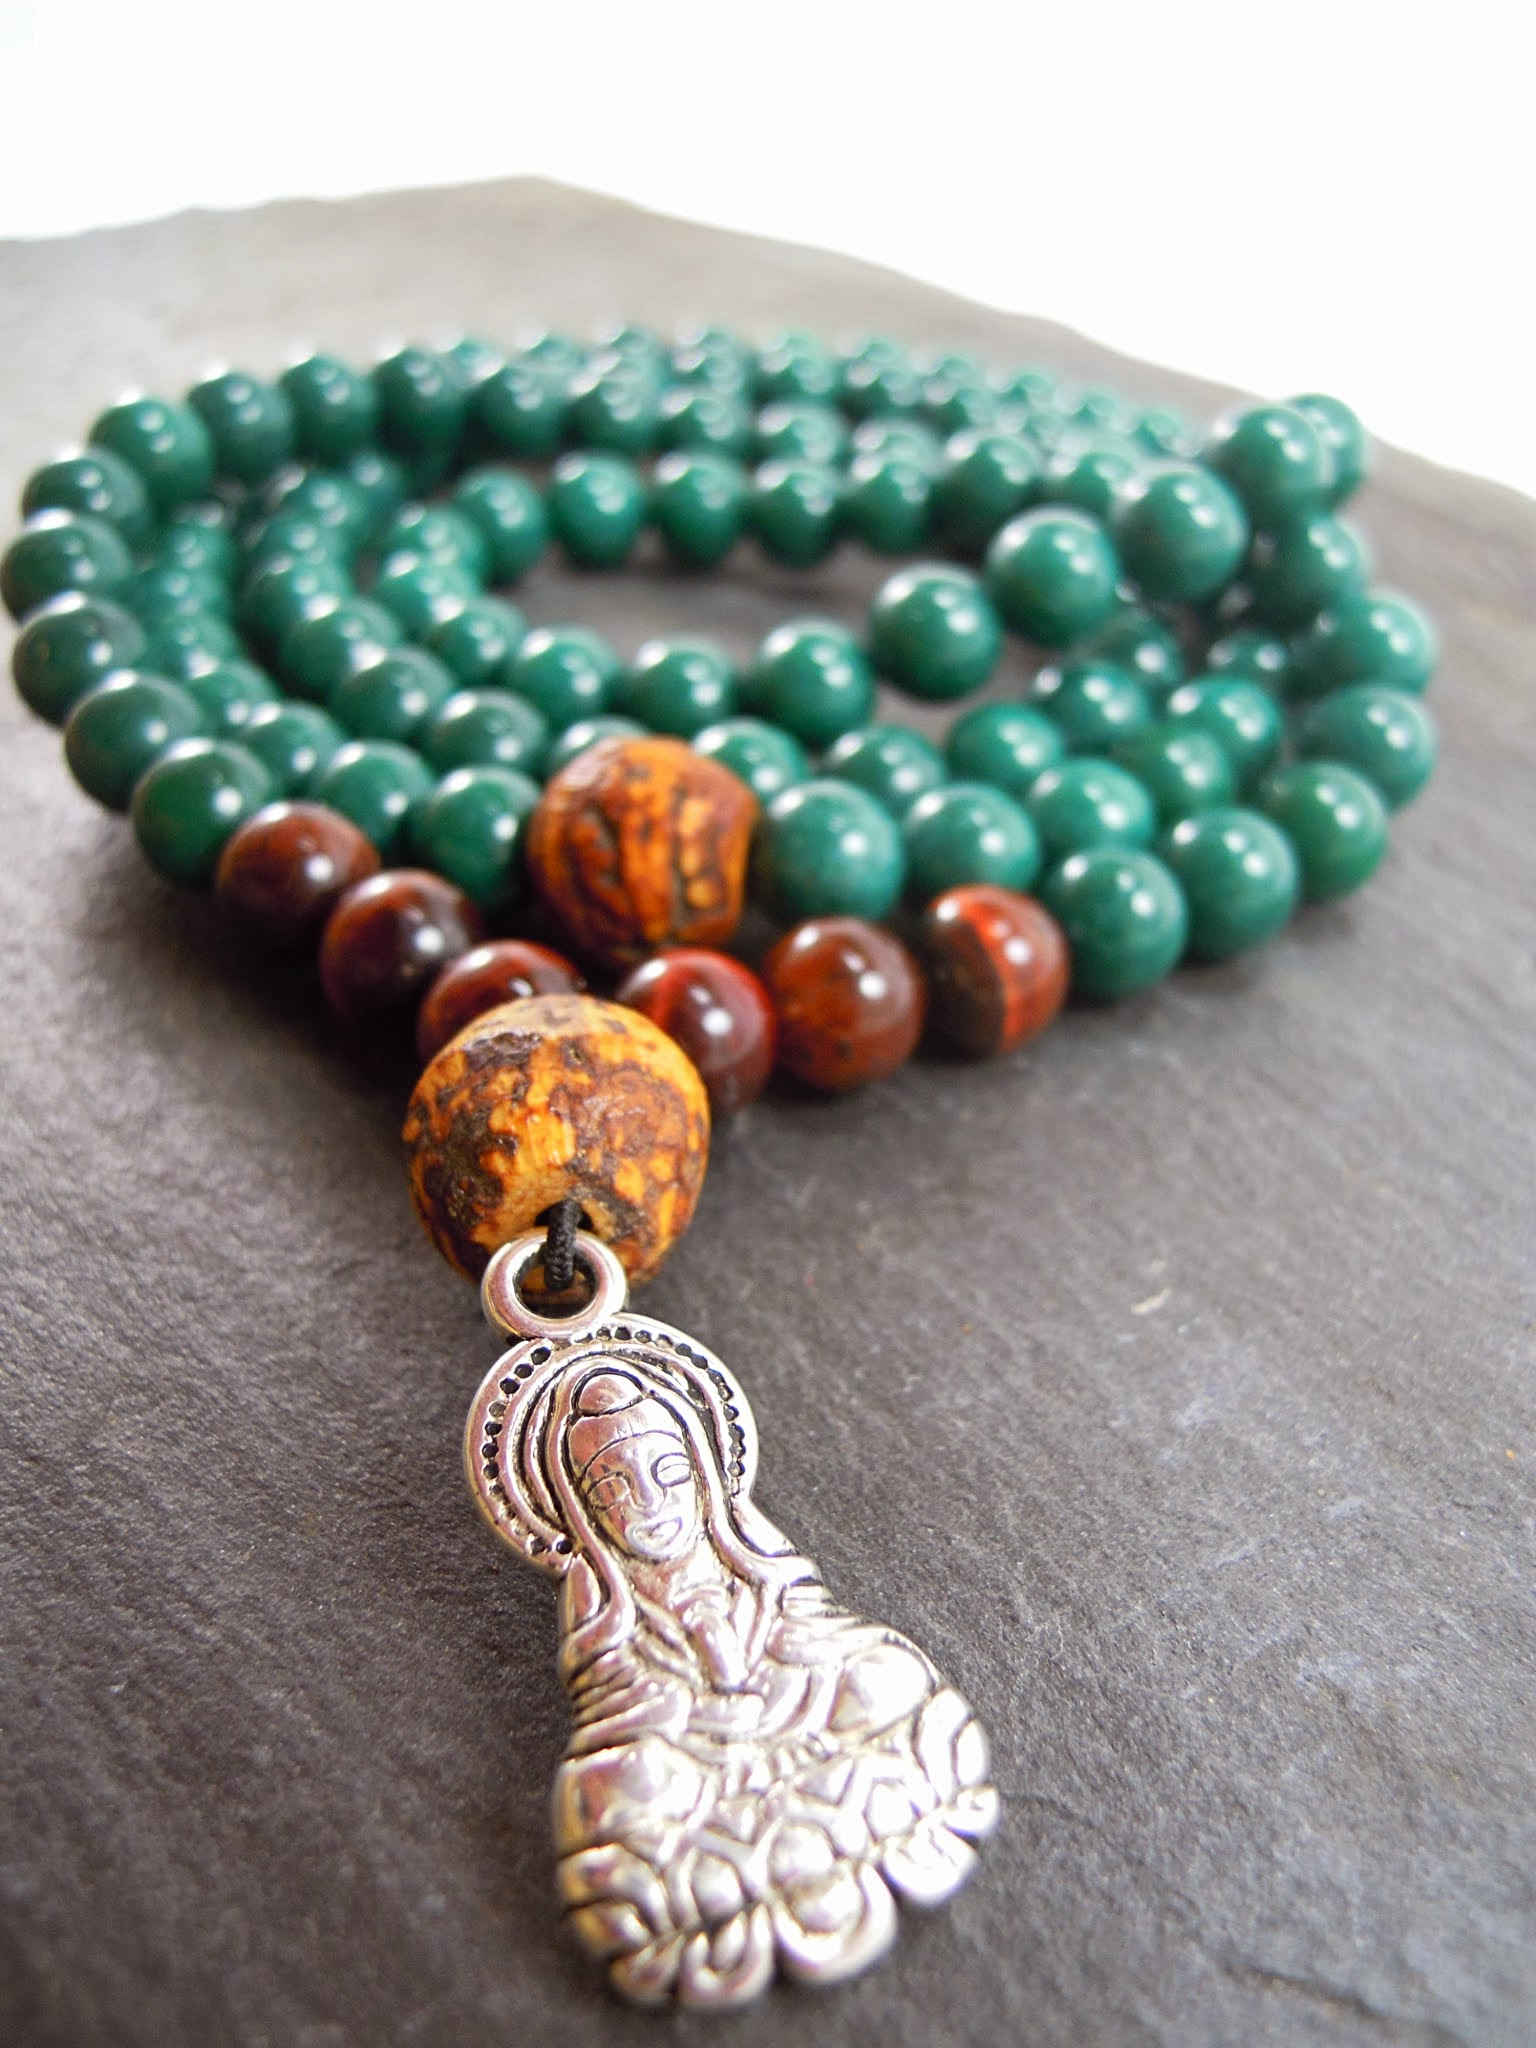 NOW AVAILABLE! Pursuit of Compassion Mala - Mountain Jade, Red Tiger Eye, Bohdi seed, and  Avalokiteśvara, thebodhisattva of compassion.